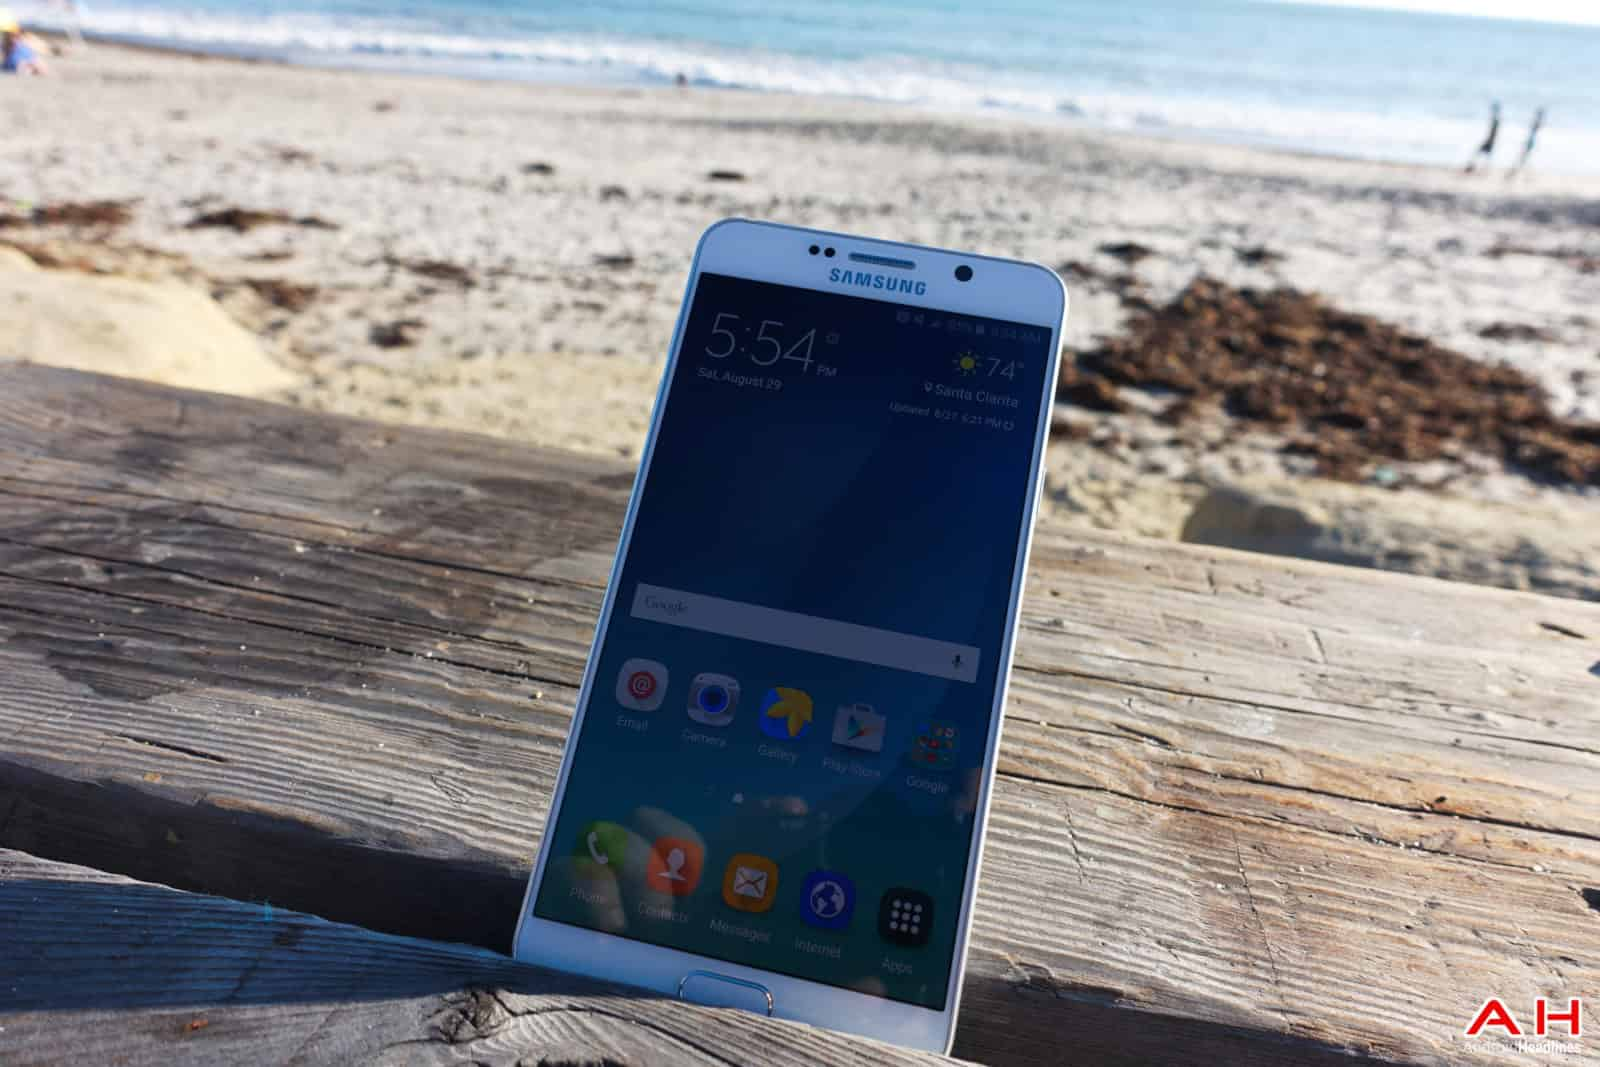 AH Samsung Galaxy Note 5 2015 Chris-23